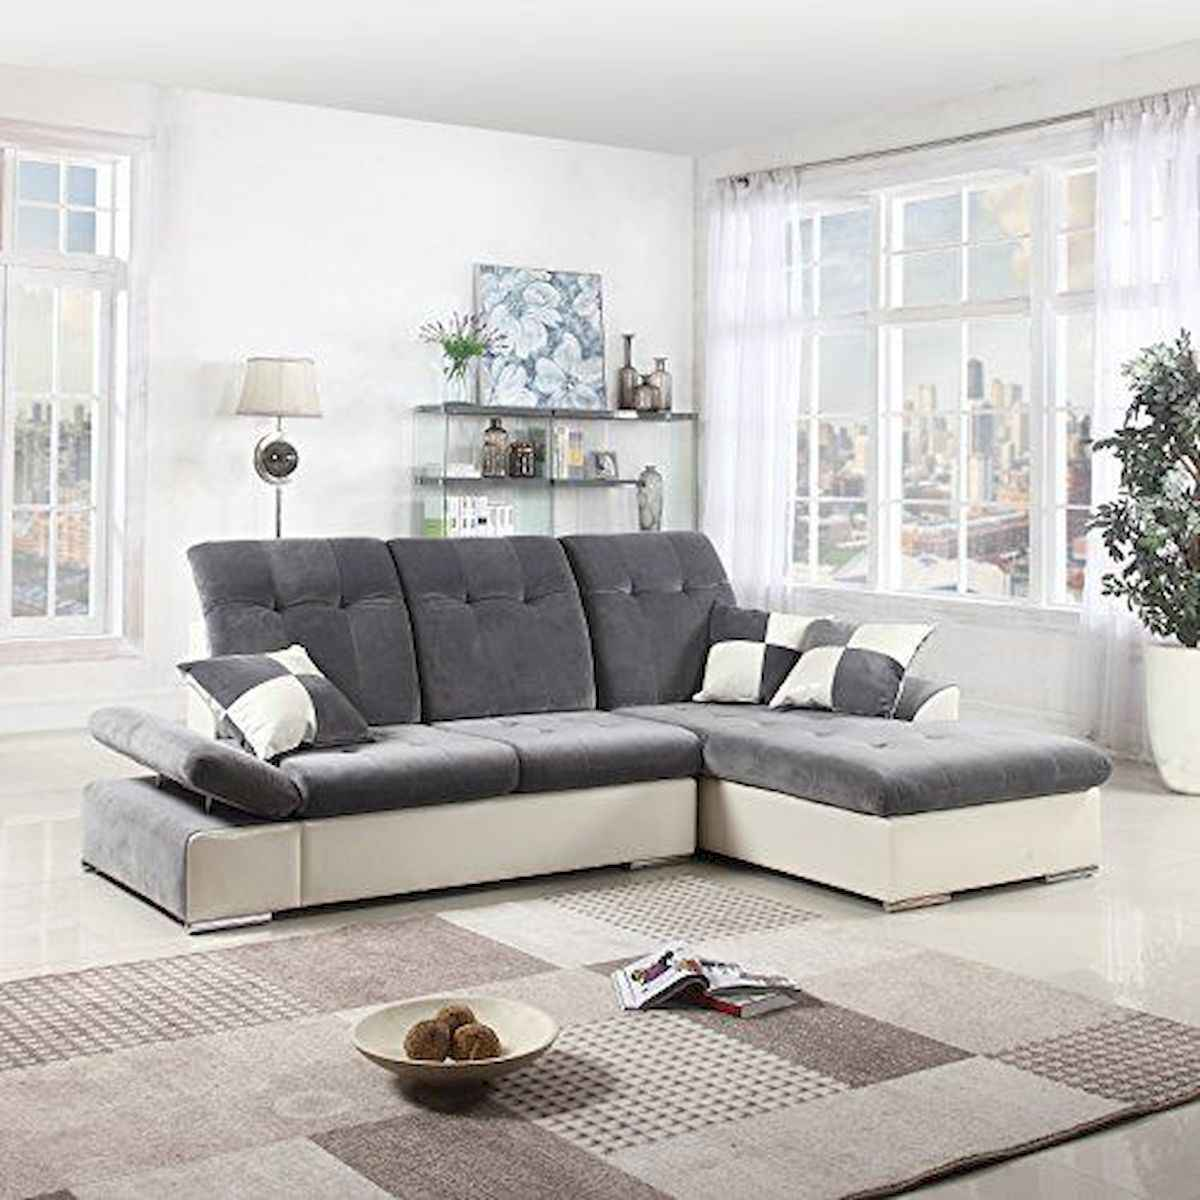 70 Stunning Grey White Black Living Room Decor Ideas And Remodel (63)